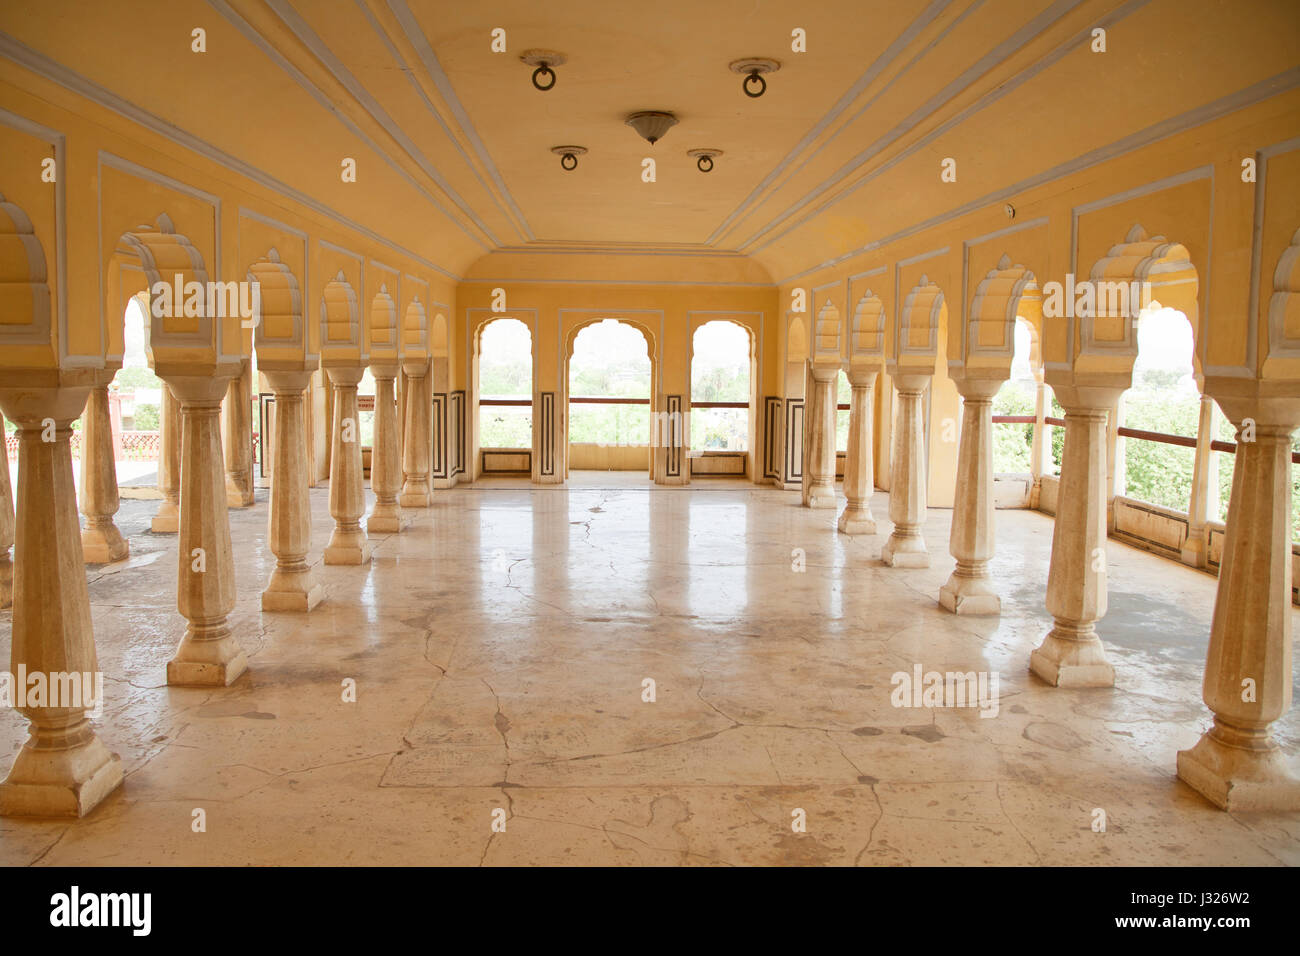 Hall on one of the upper stories of the Chandra Mahal at the City Palace in Jaipur, Rajasthan. - Stock Image